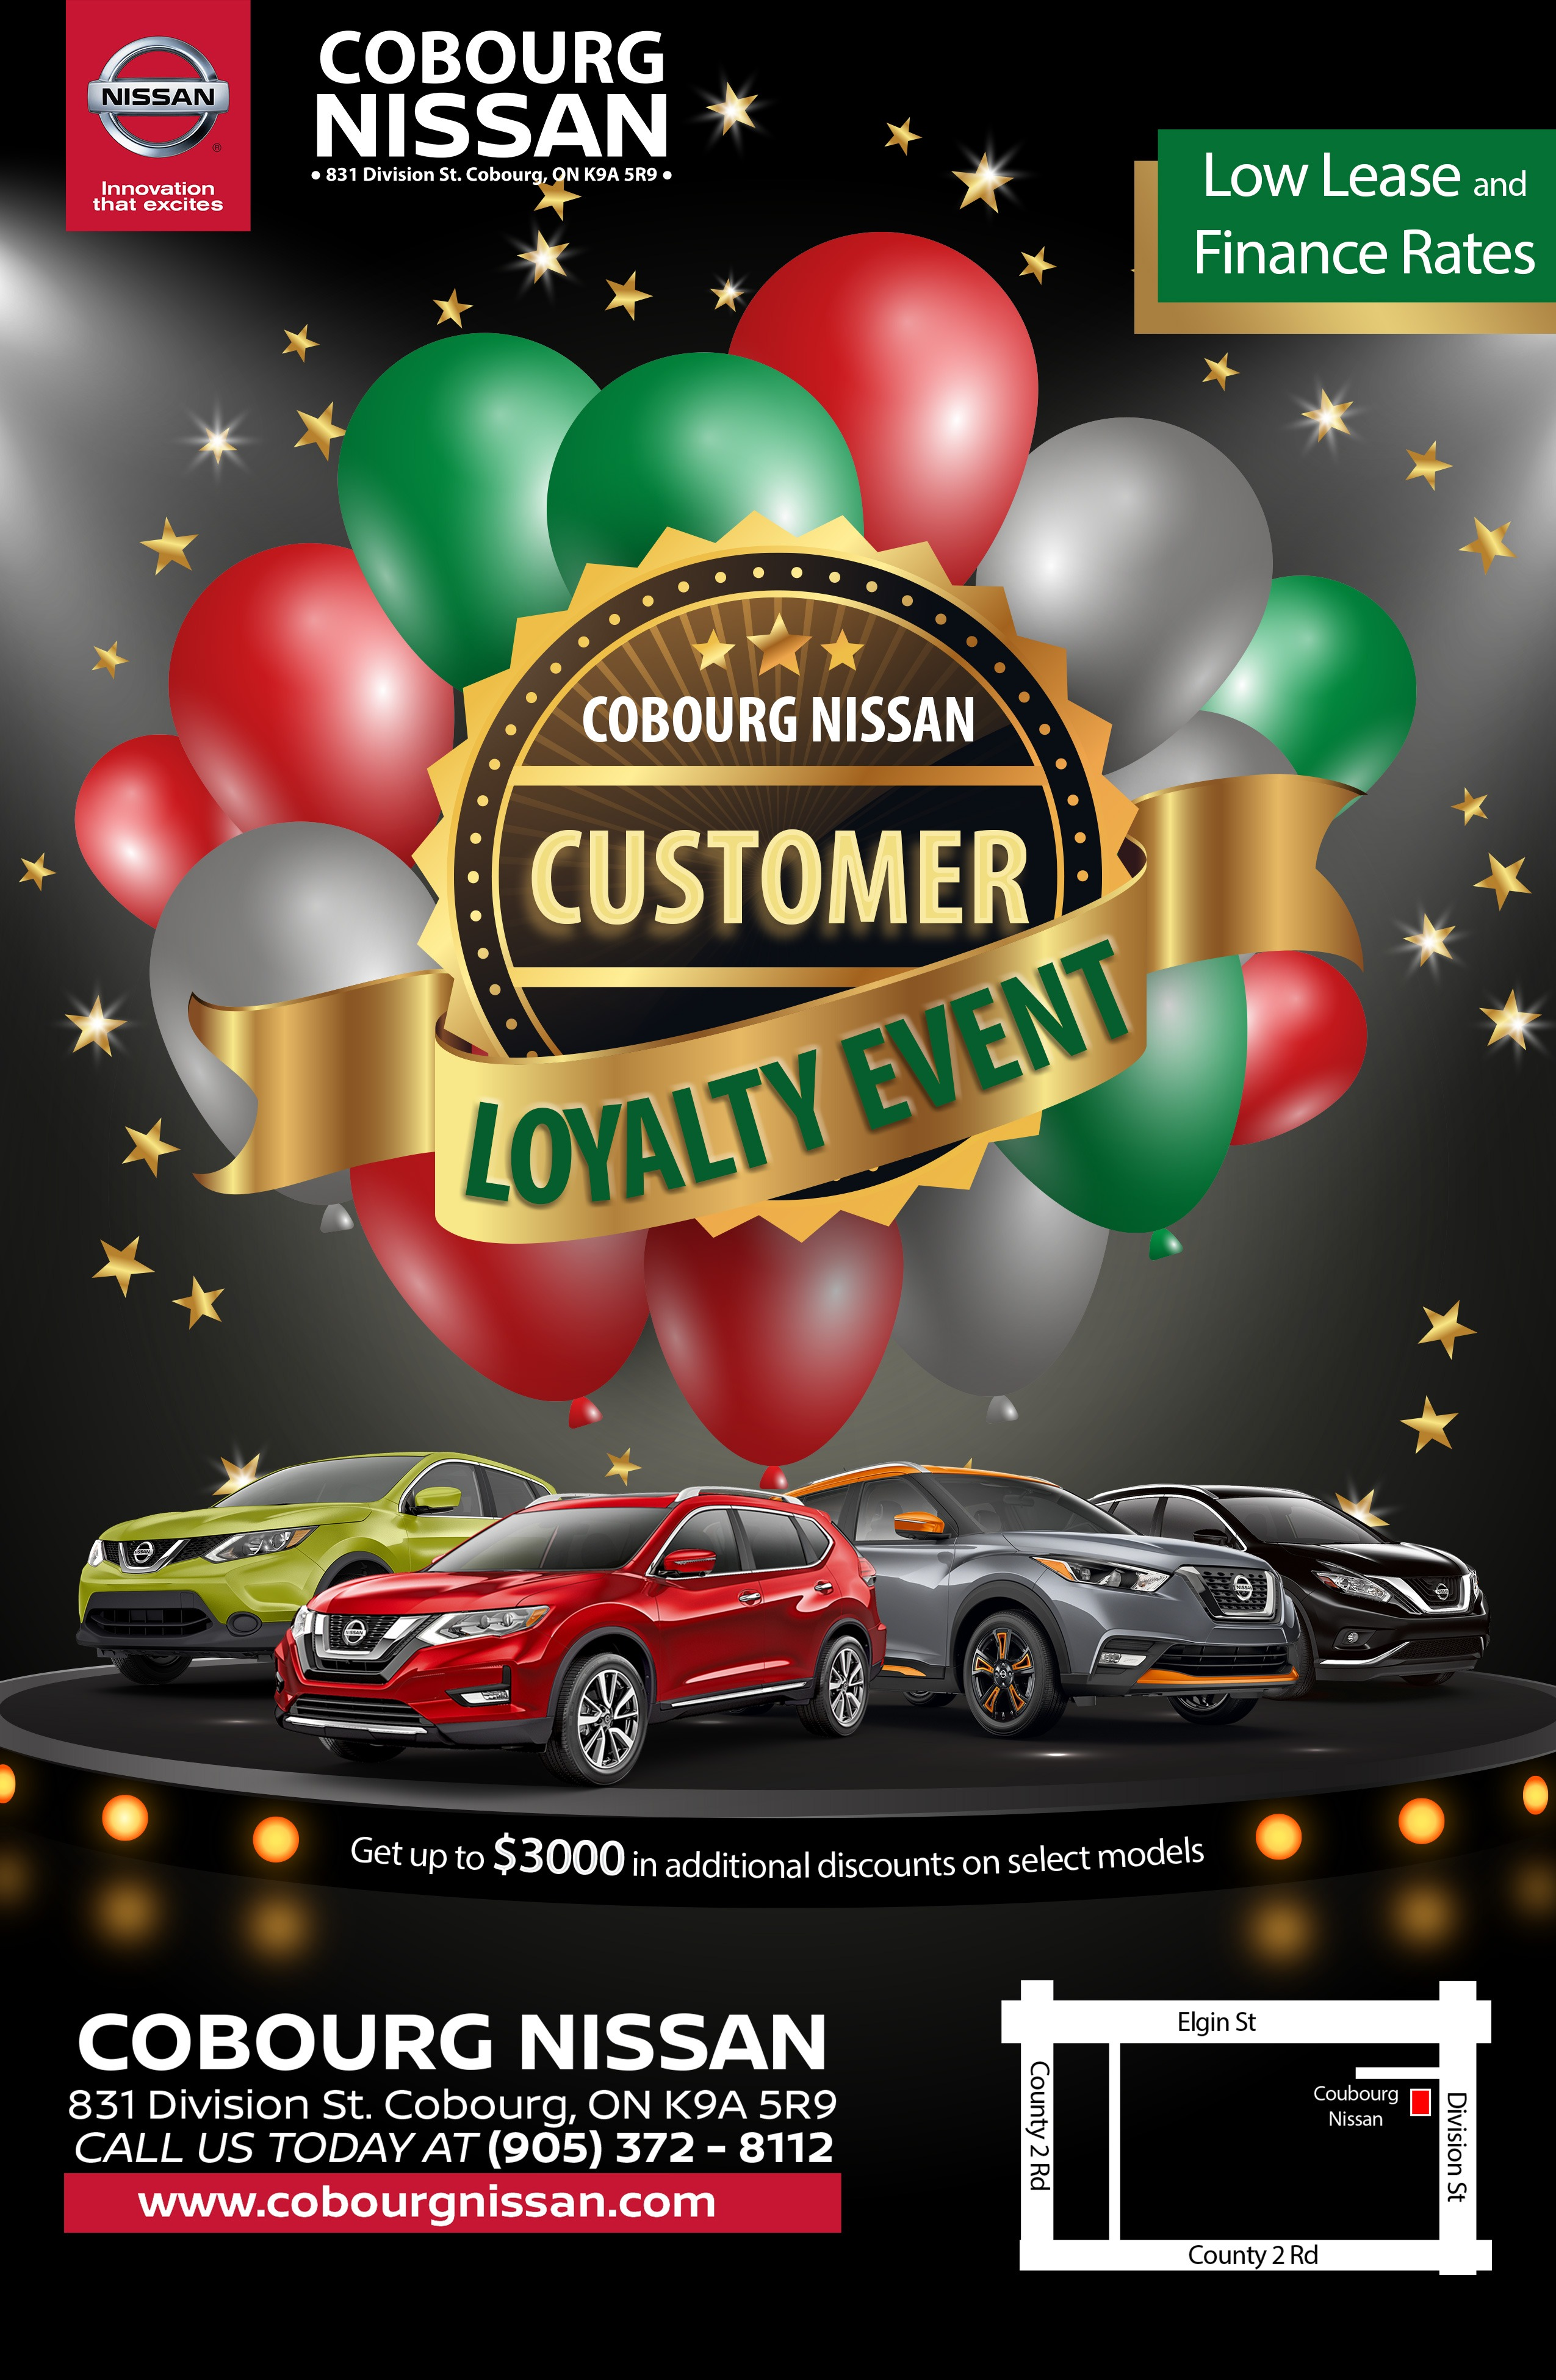 Up to $3000 in additional discounts on select models, Low Lease and finance offers